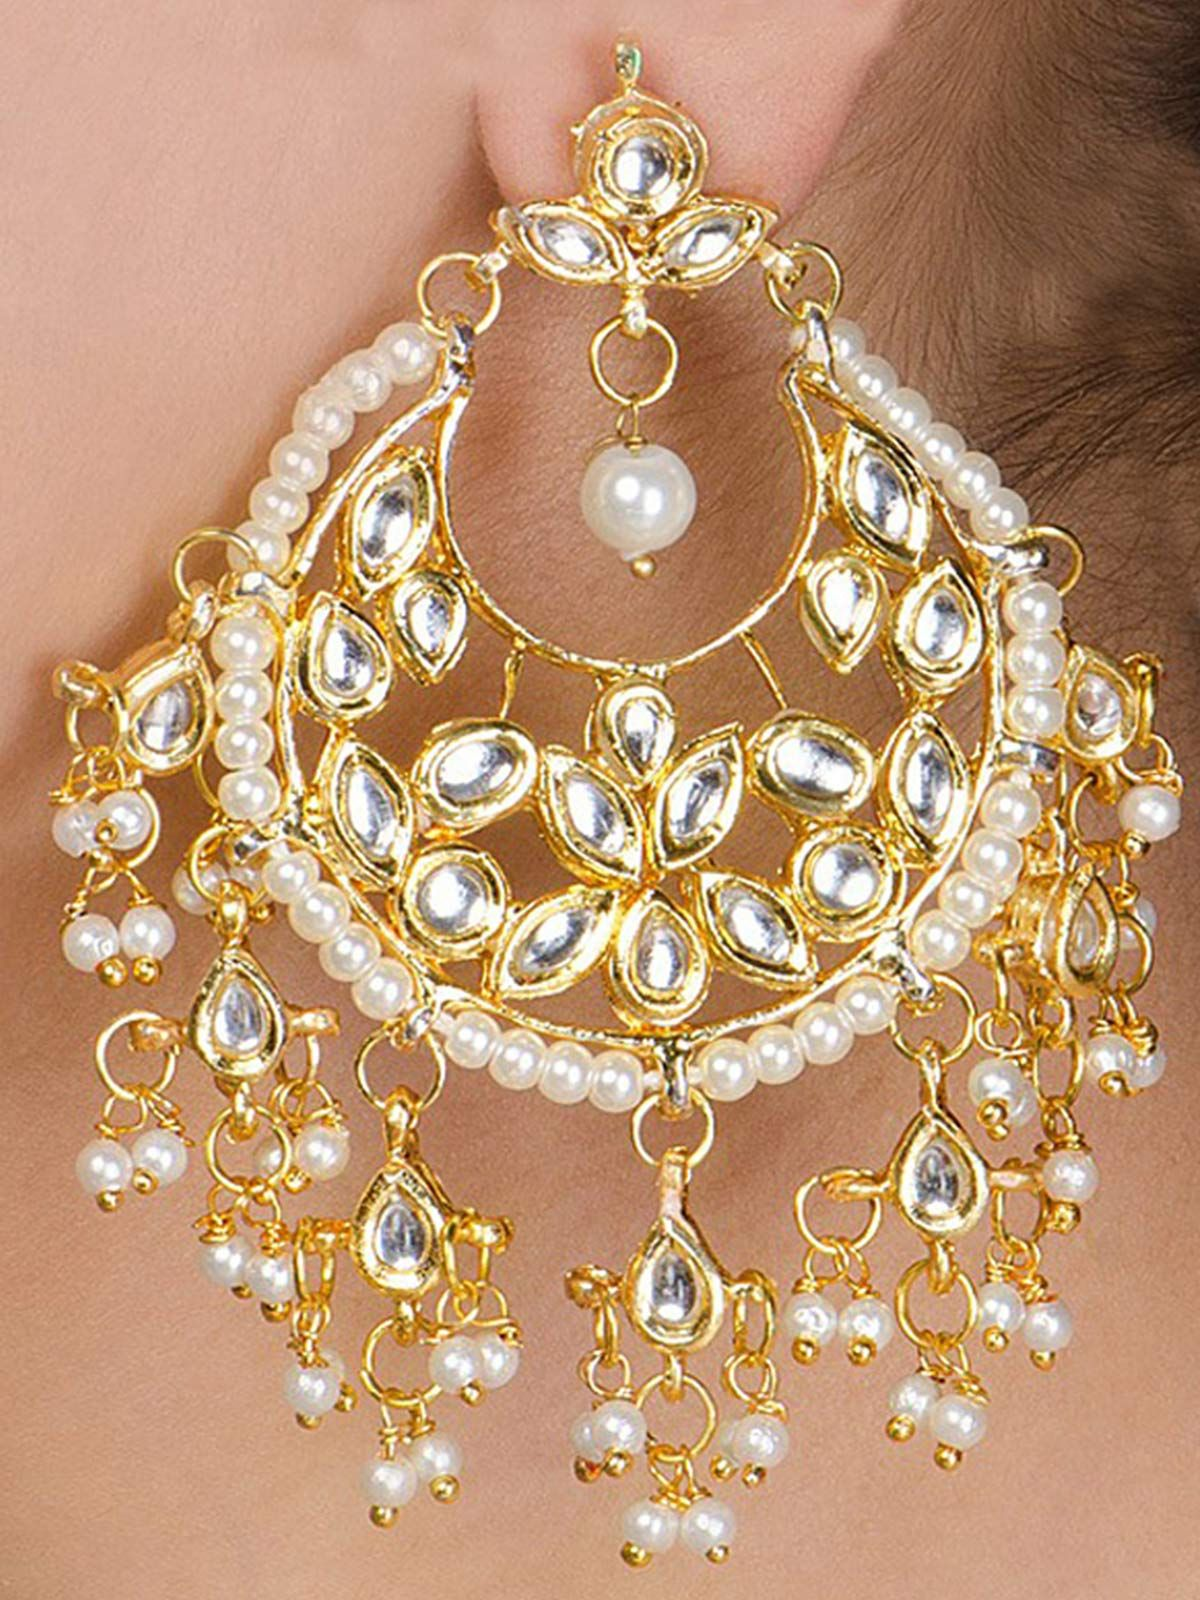 Kundan Jhalar Chandbali earrings